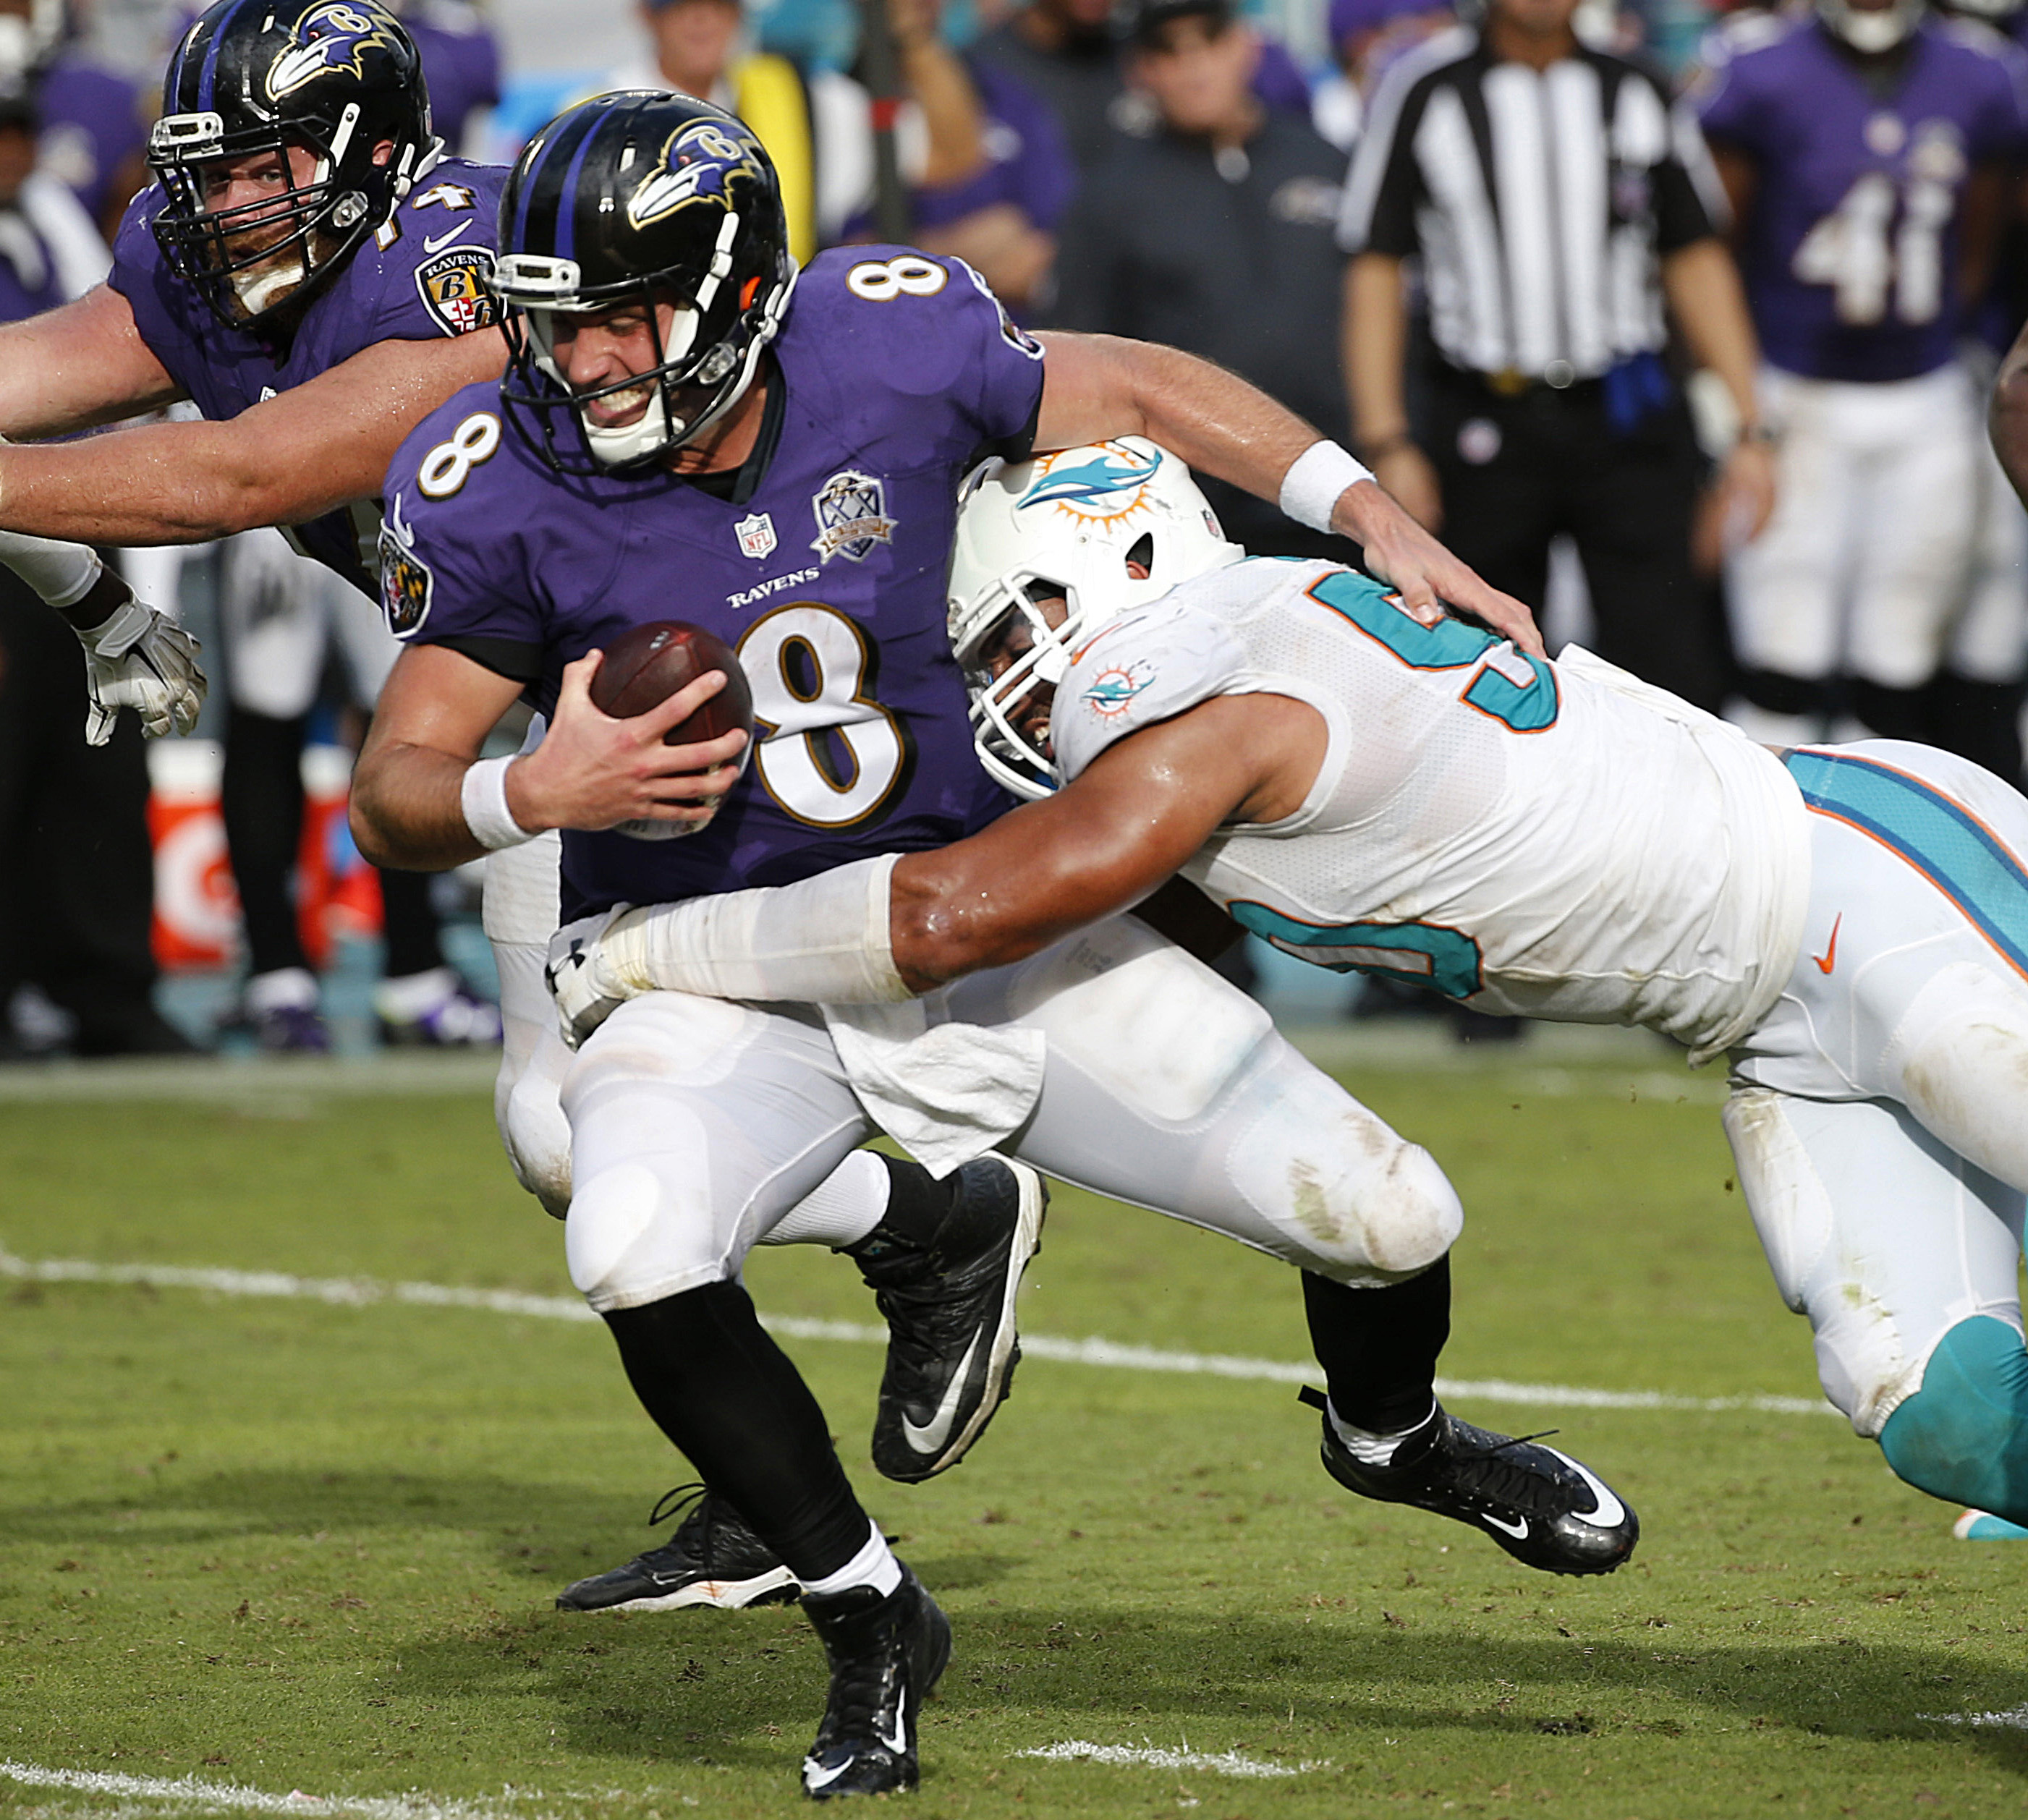 FILE - In this Dec. 6, 2015, file photo, Baltimore Ravens quarterback Matt Schaub (8) is sacked by Miami Dolphins defensive end Olivier Vernon (50), during the second half of an NFL football game, in Miami Gardens, Fla. The Miami Dolphins placed the trans